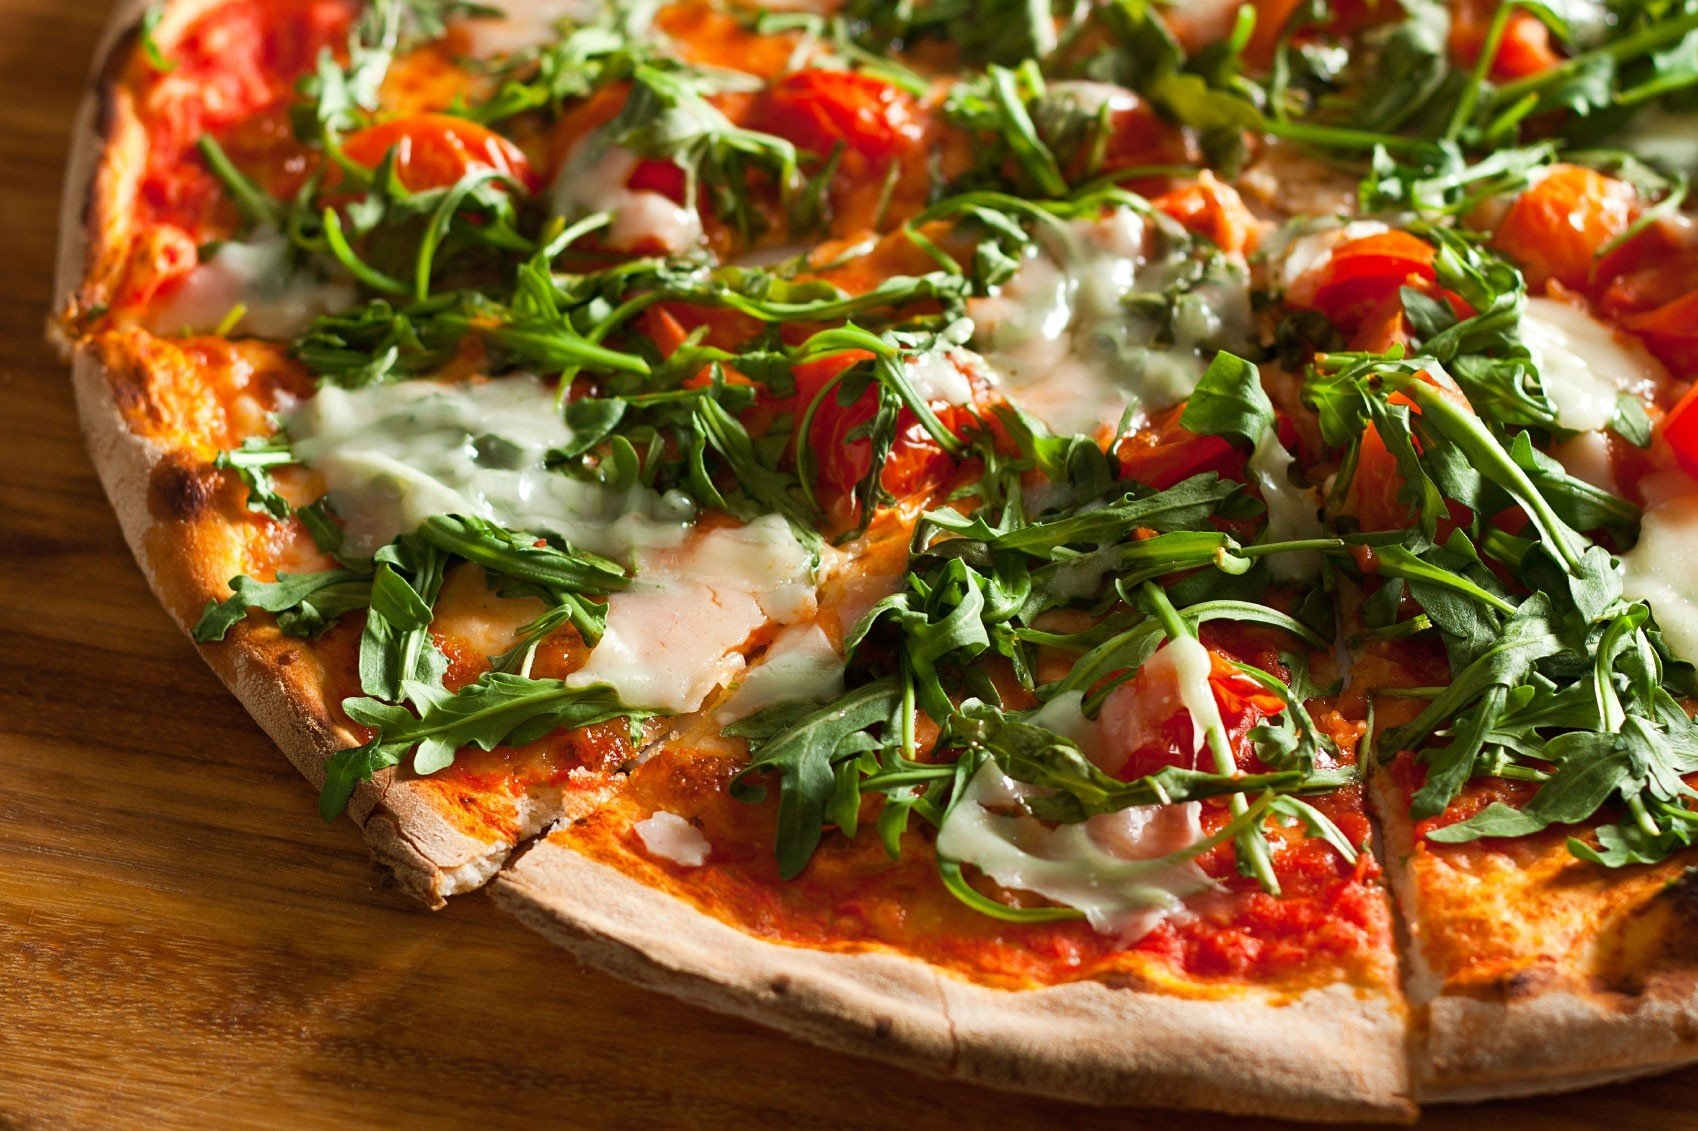 News pizza food dish cuisine italian food wooden produce bruschetta european food vegetable tomato toppings fresh sliced